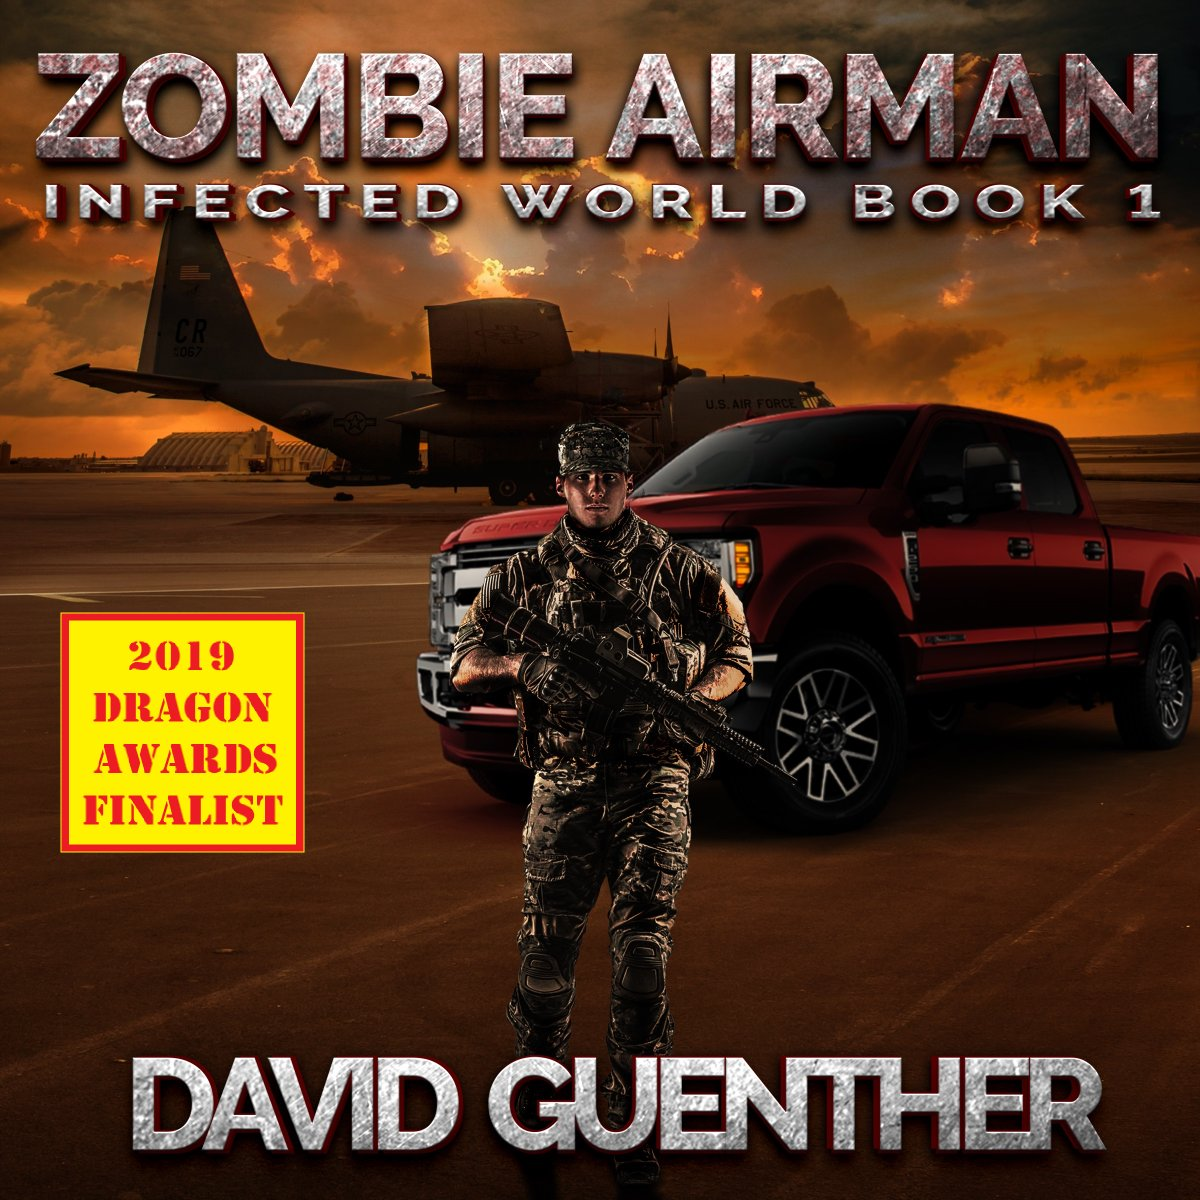 Ignore the phone and screaming, lock the doors, and pour yourself a drink. Now settle back and enjoy ZOMBIE AIRMAN. #BookSeries #KU #kindle #eBook #bookaddict #thriller #usn #USAFwomen #airwoman #Marines #army #soldier #zombiehorde #zombiestory  https://amzn.to/2T1C3Mppic.twitter.com/kzYCoaxbZP